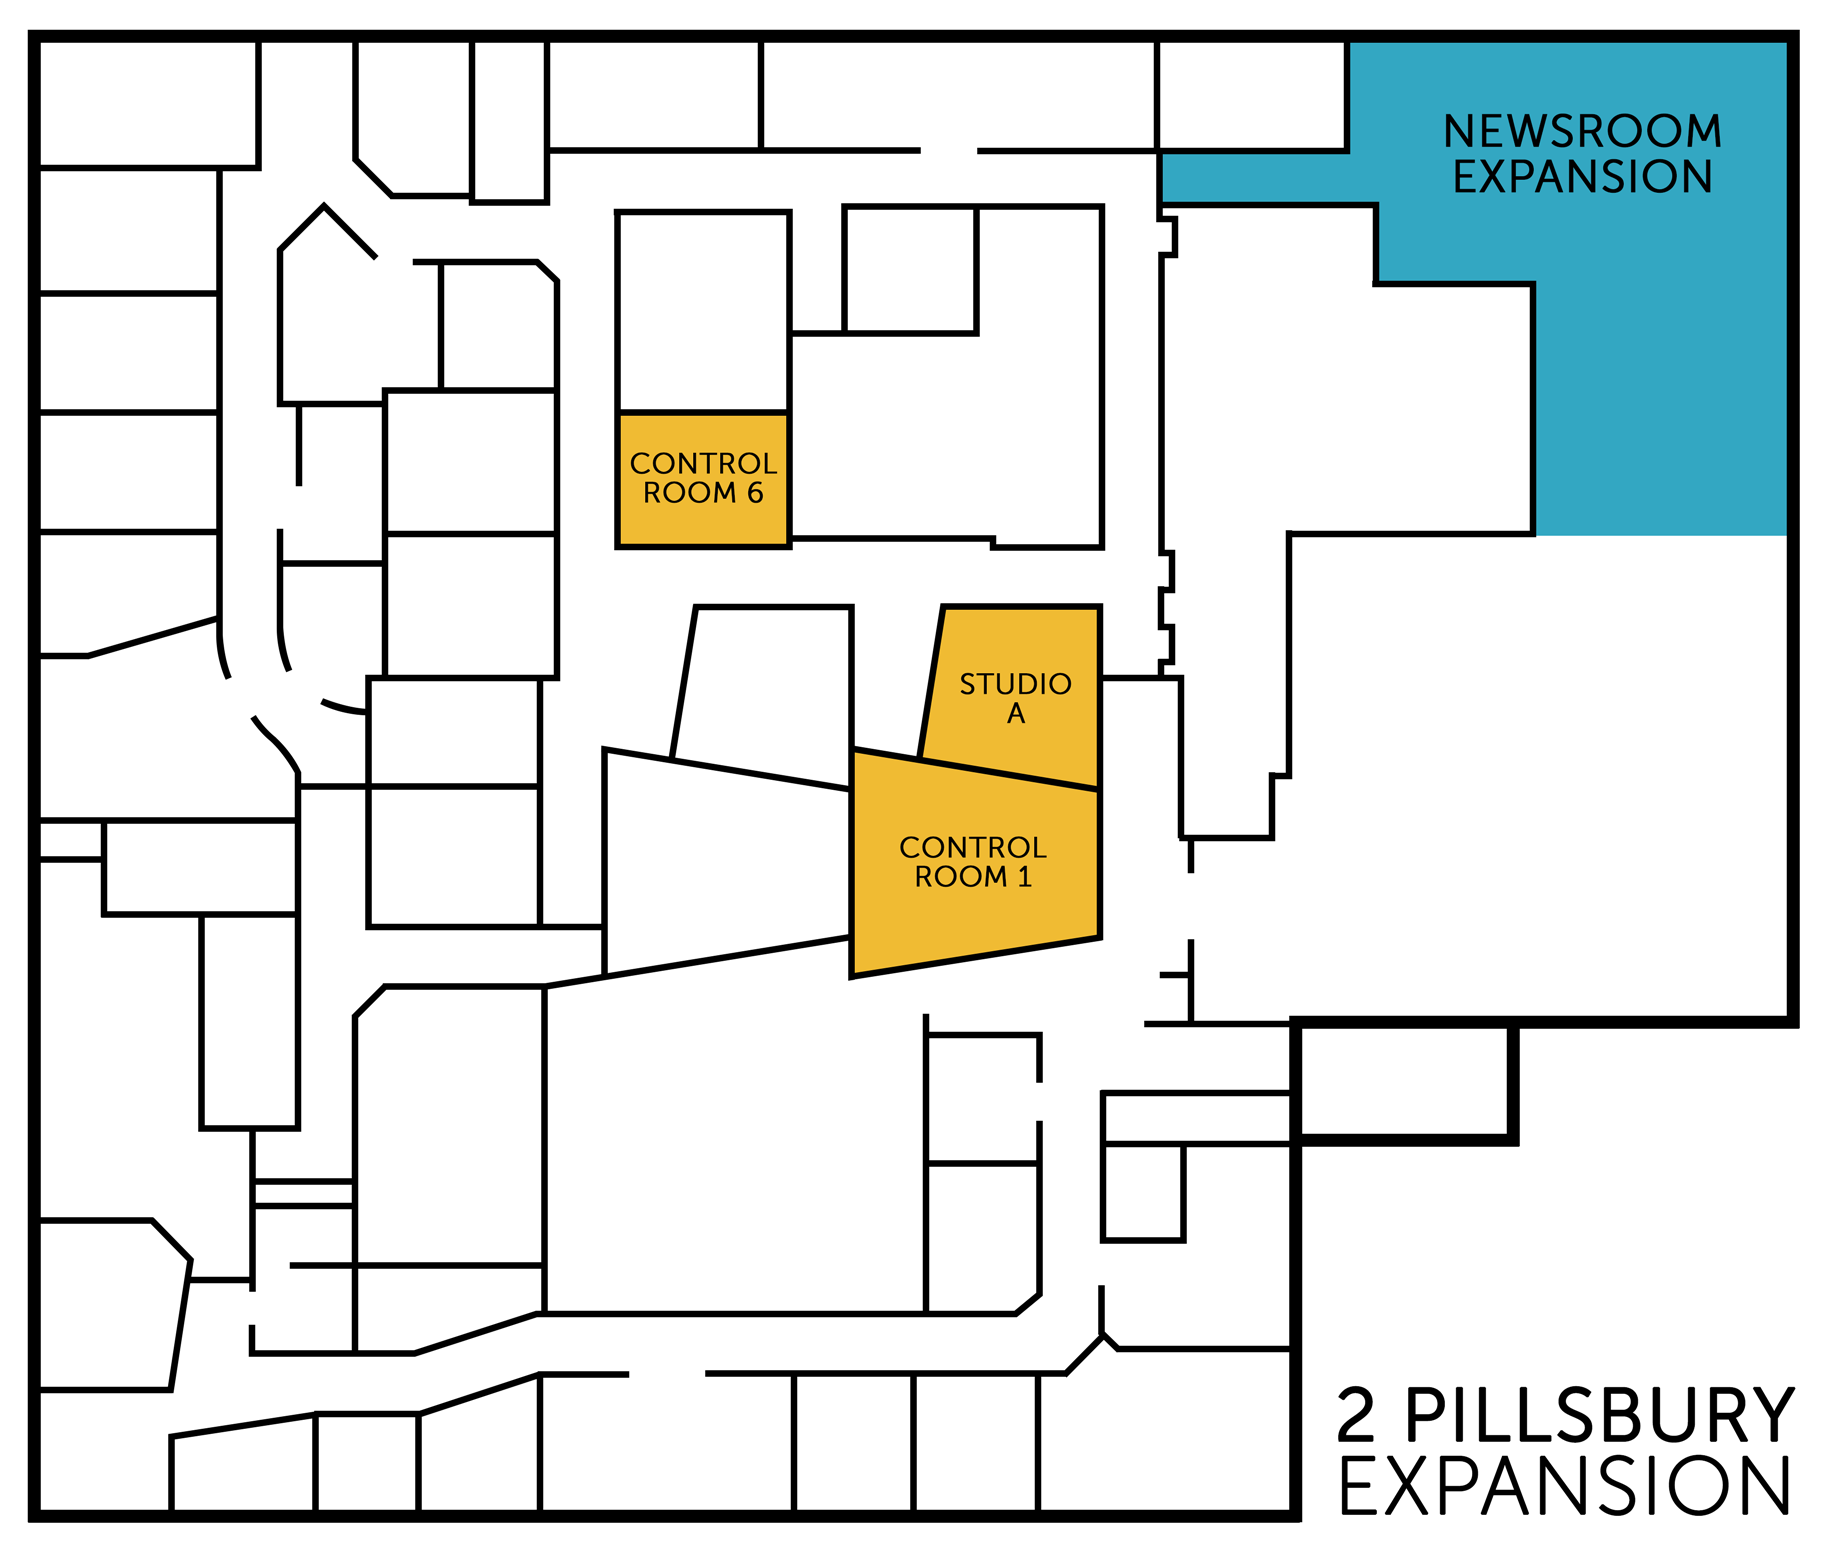 Highlighted areas show the expanded floor plan of NHPR's facility at 2 Pillsbury Street in Concord.